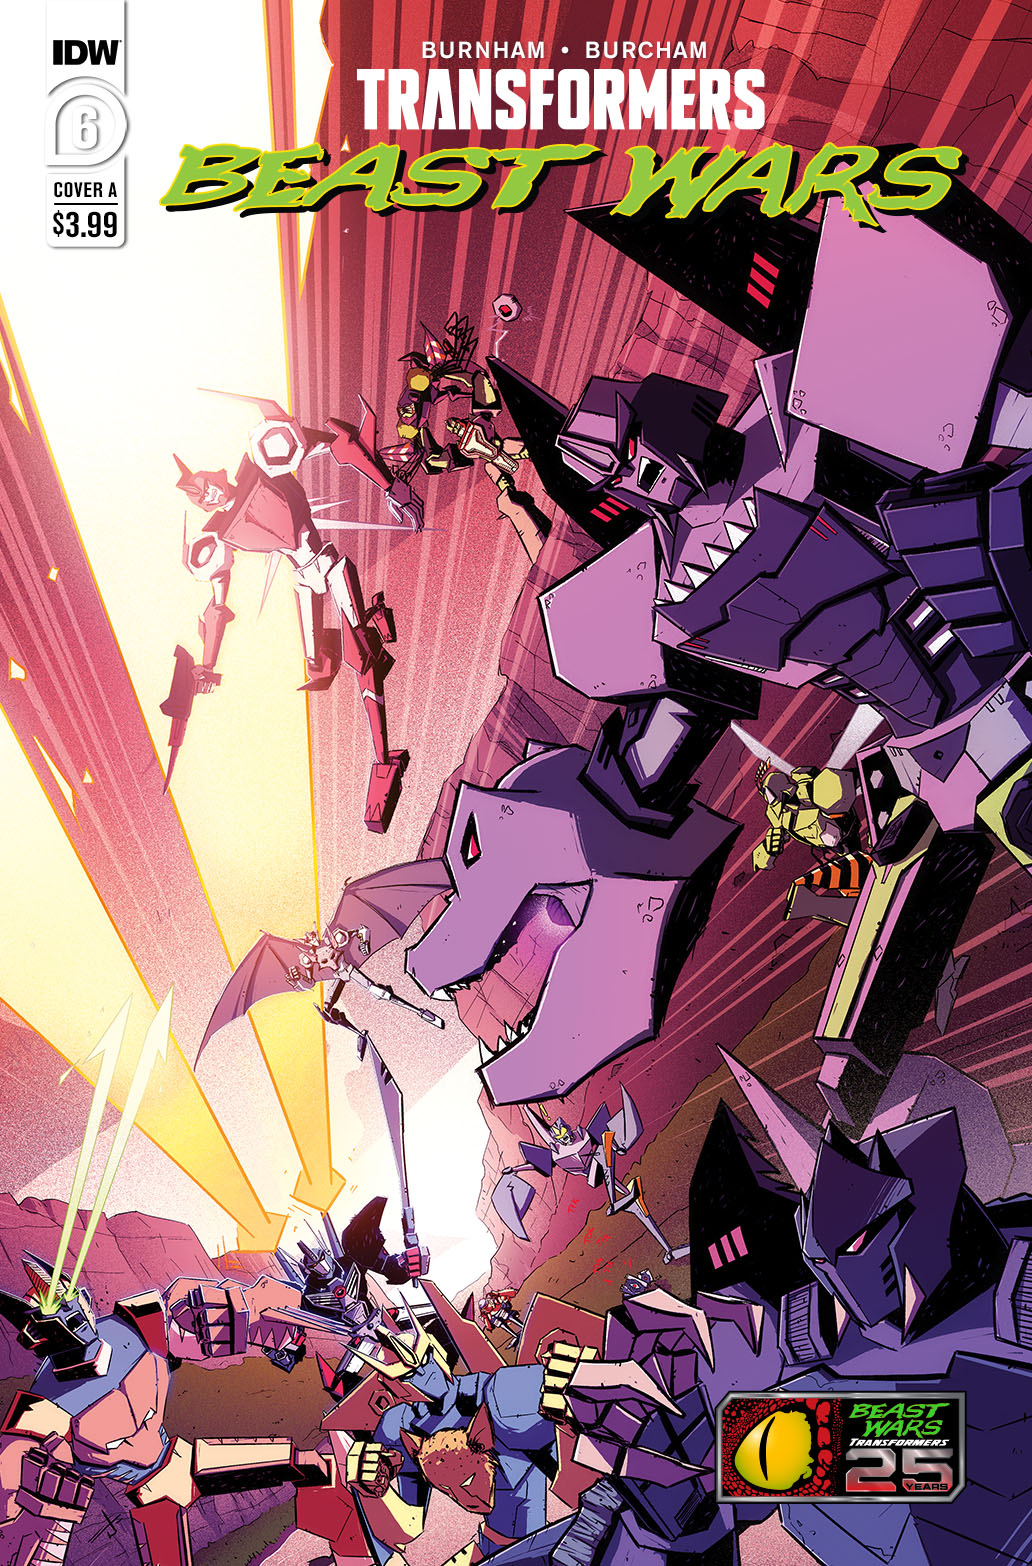 TFBW06-Cover-A-copy IDW Publishing July 2021 Solicitations